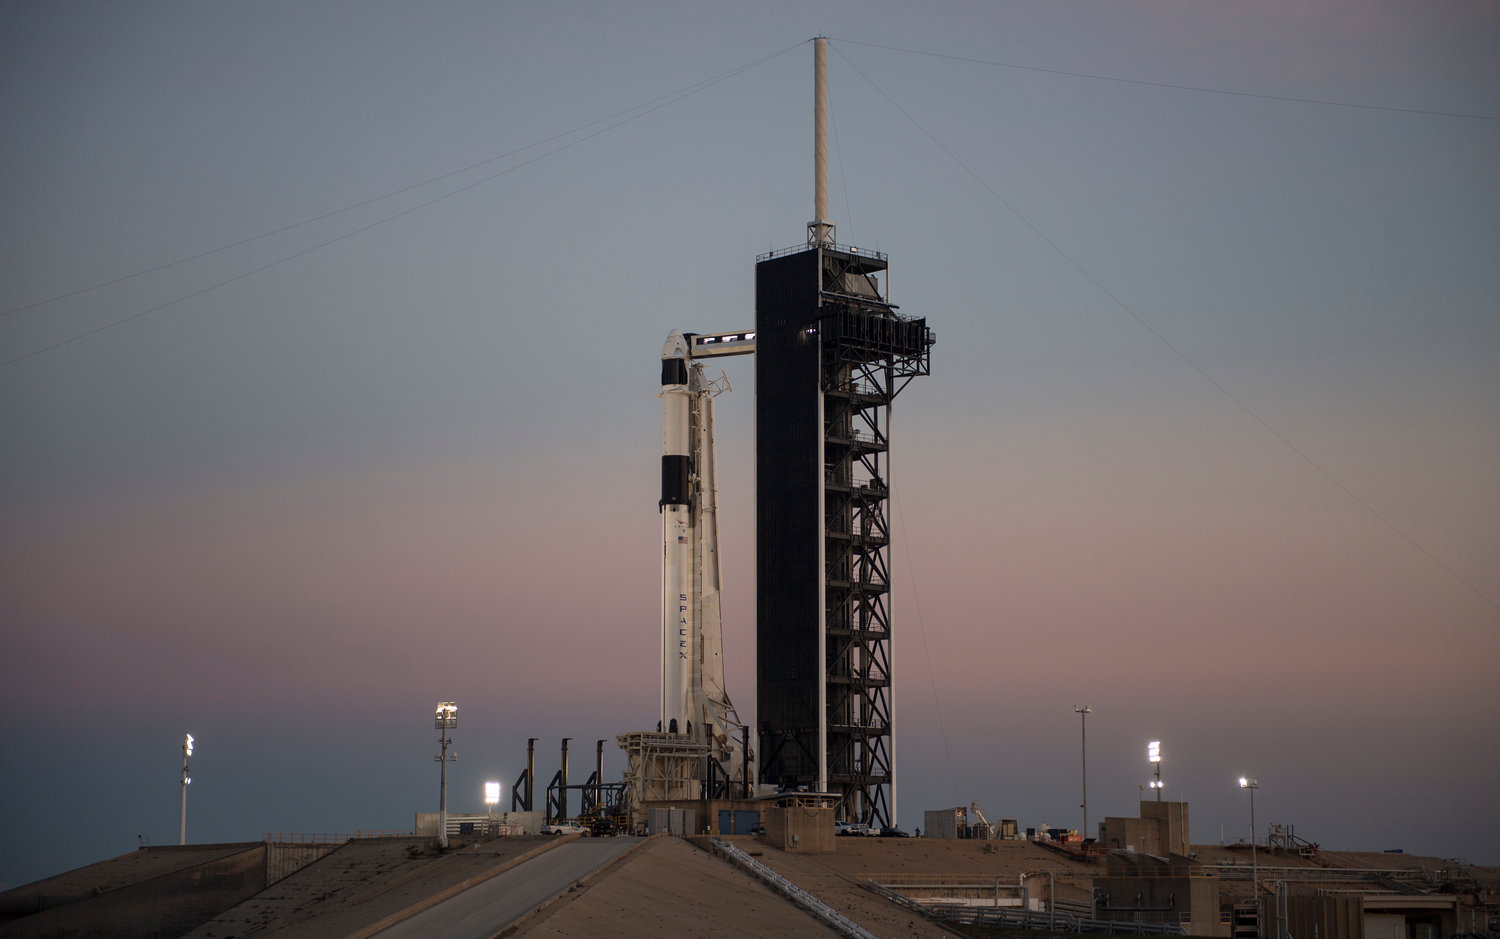 A SpaceX Falcon 9 rocket with the company's Crew Dragon spacecraft onboard is seen after being raised into a vertical position on the launch pad at Launch Complex 39A as preparations continue for the Demo-1 mission, February 28 2019 at the Kennedy Space Center in Florida.The rockets launched from Michigan would be smaller in size than the reusable Falcon 9 rockets made by SpaceX. They also would orbit Earth at the Poles, rather than around the equator.